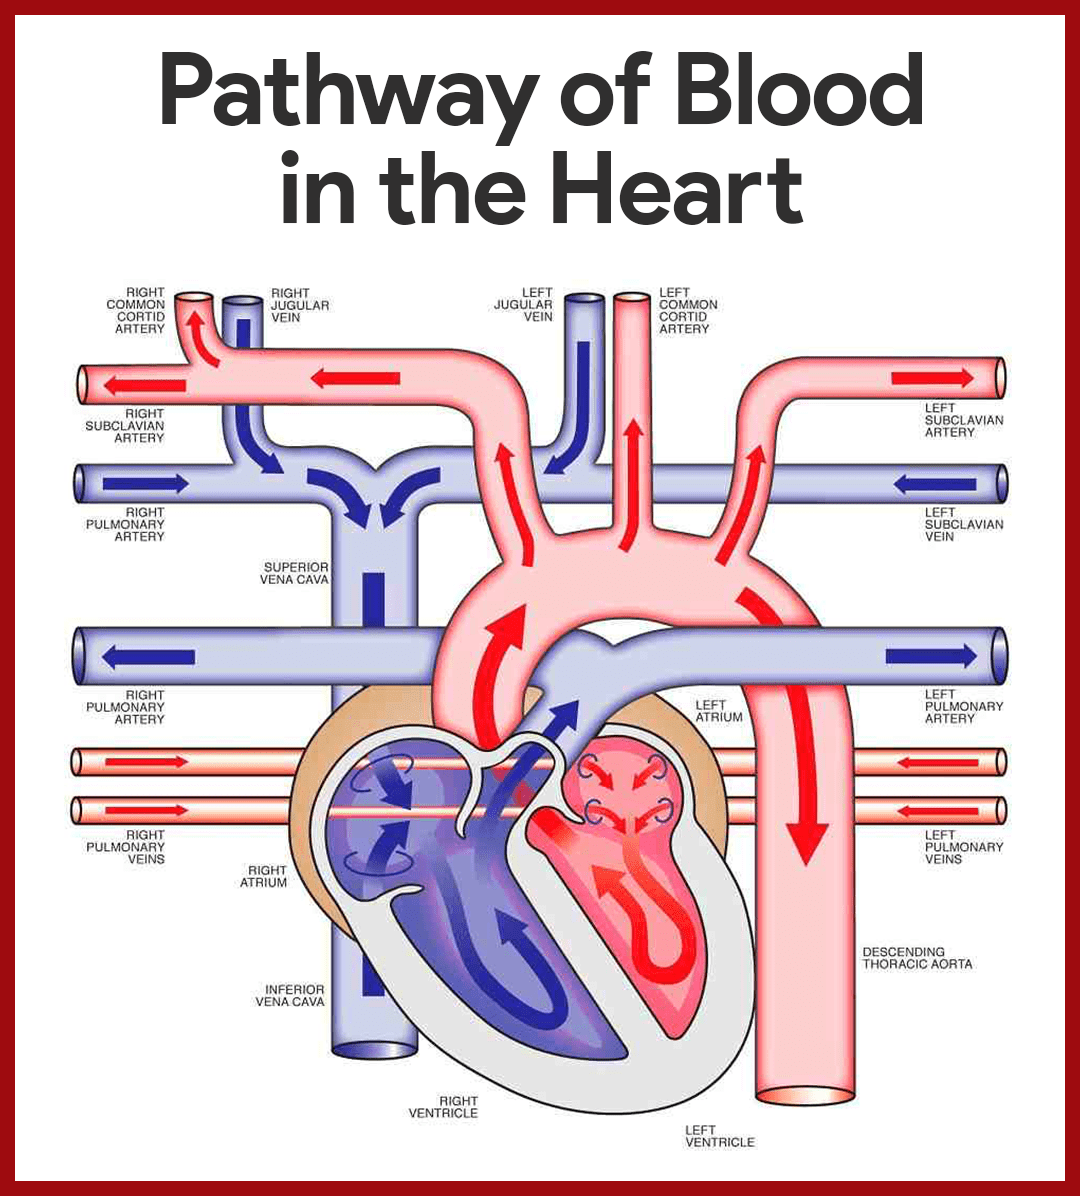 Cardiovascular system anatomy and physiology study guide for nurses entrance to the heart blood enters the heart through two large veins the inferior and superior vena cava emptying oxygen poor blood from the body into ccuart Image collections